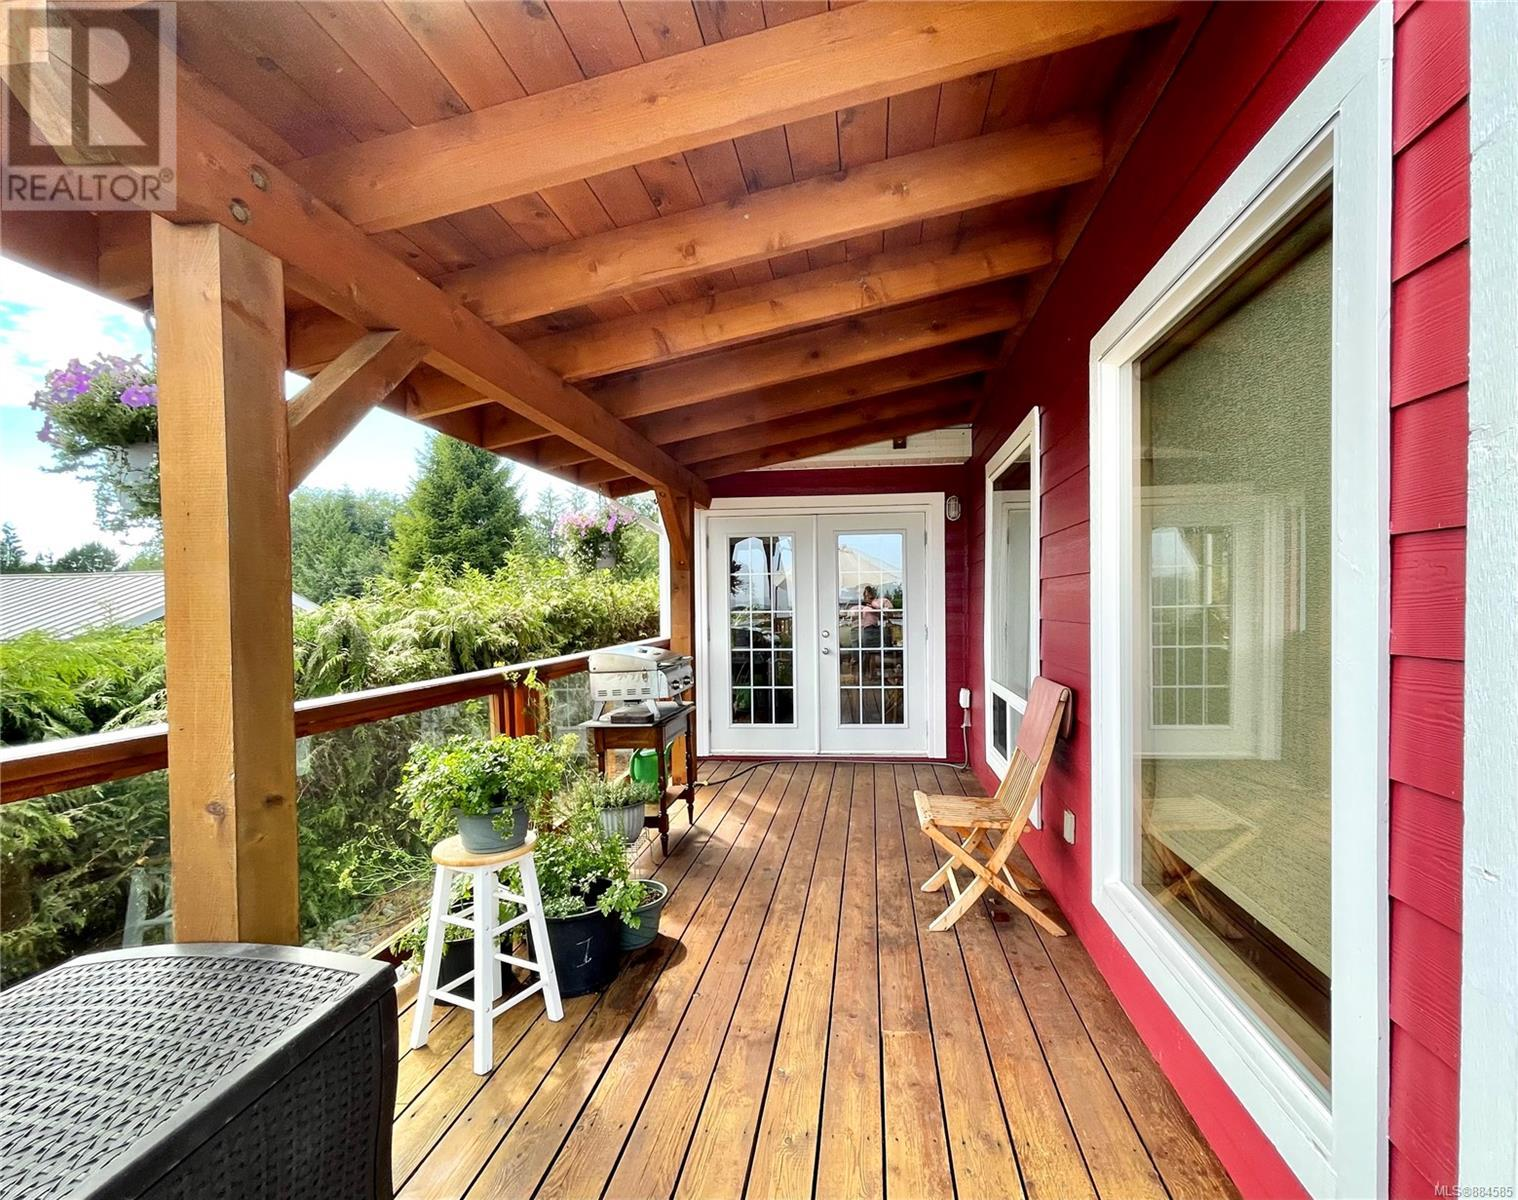 MLS® #884585 - Ucluelet House For sale Image #29